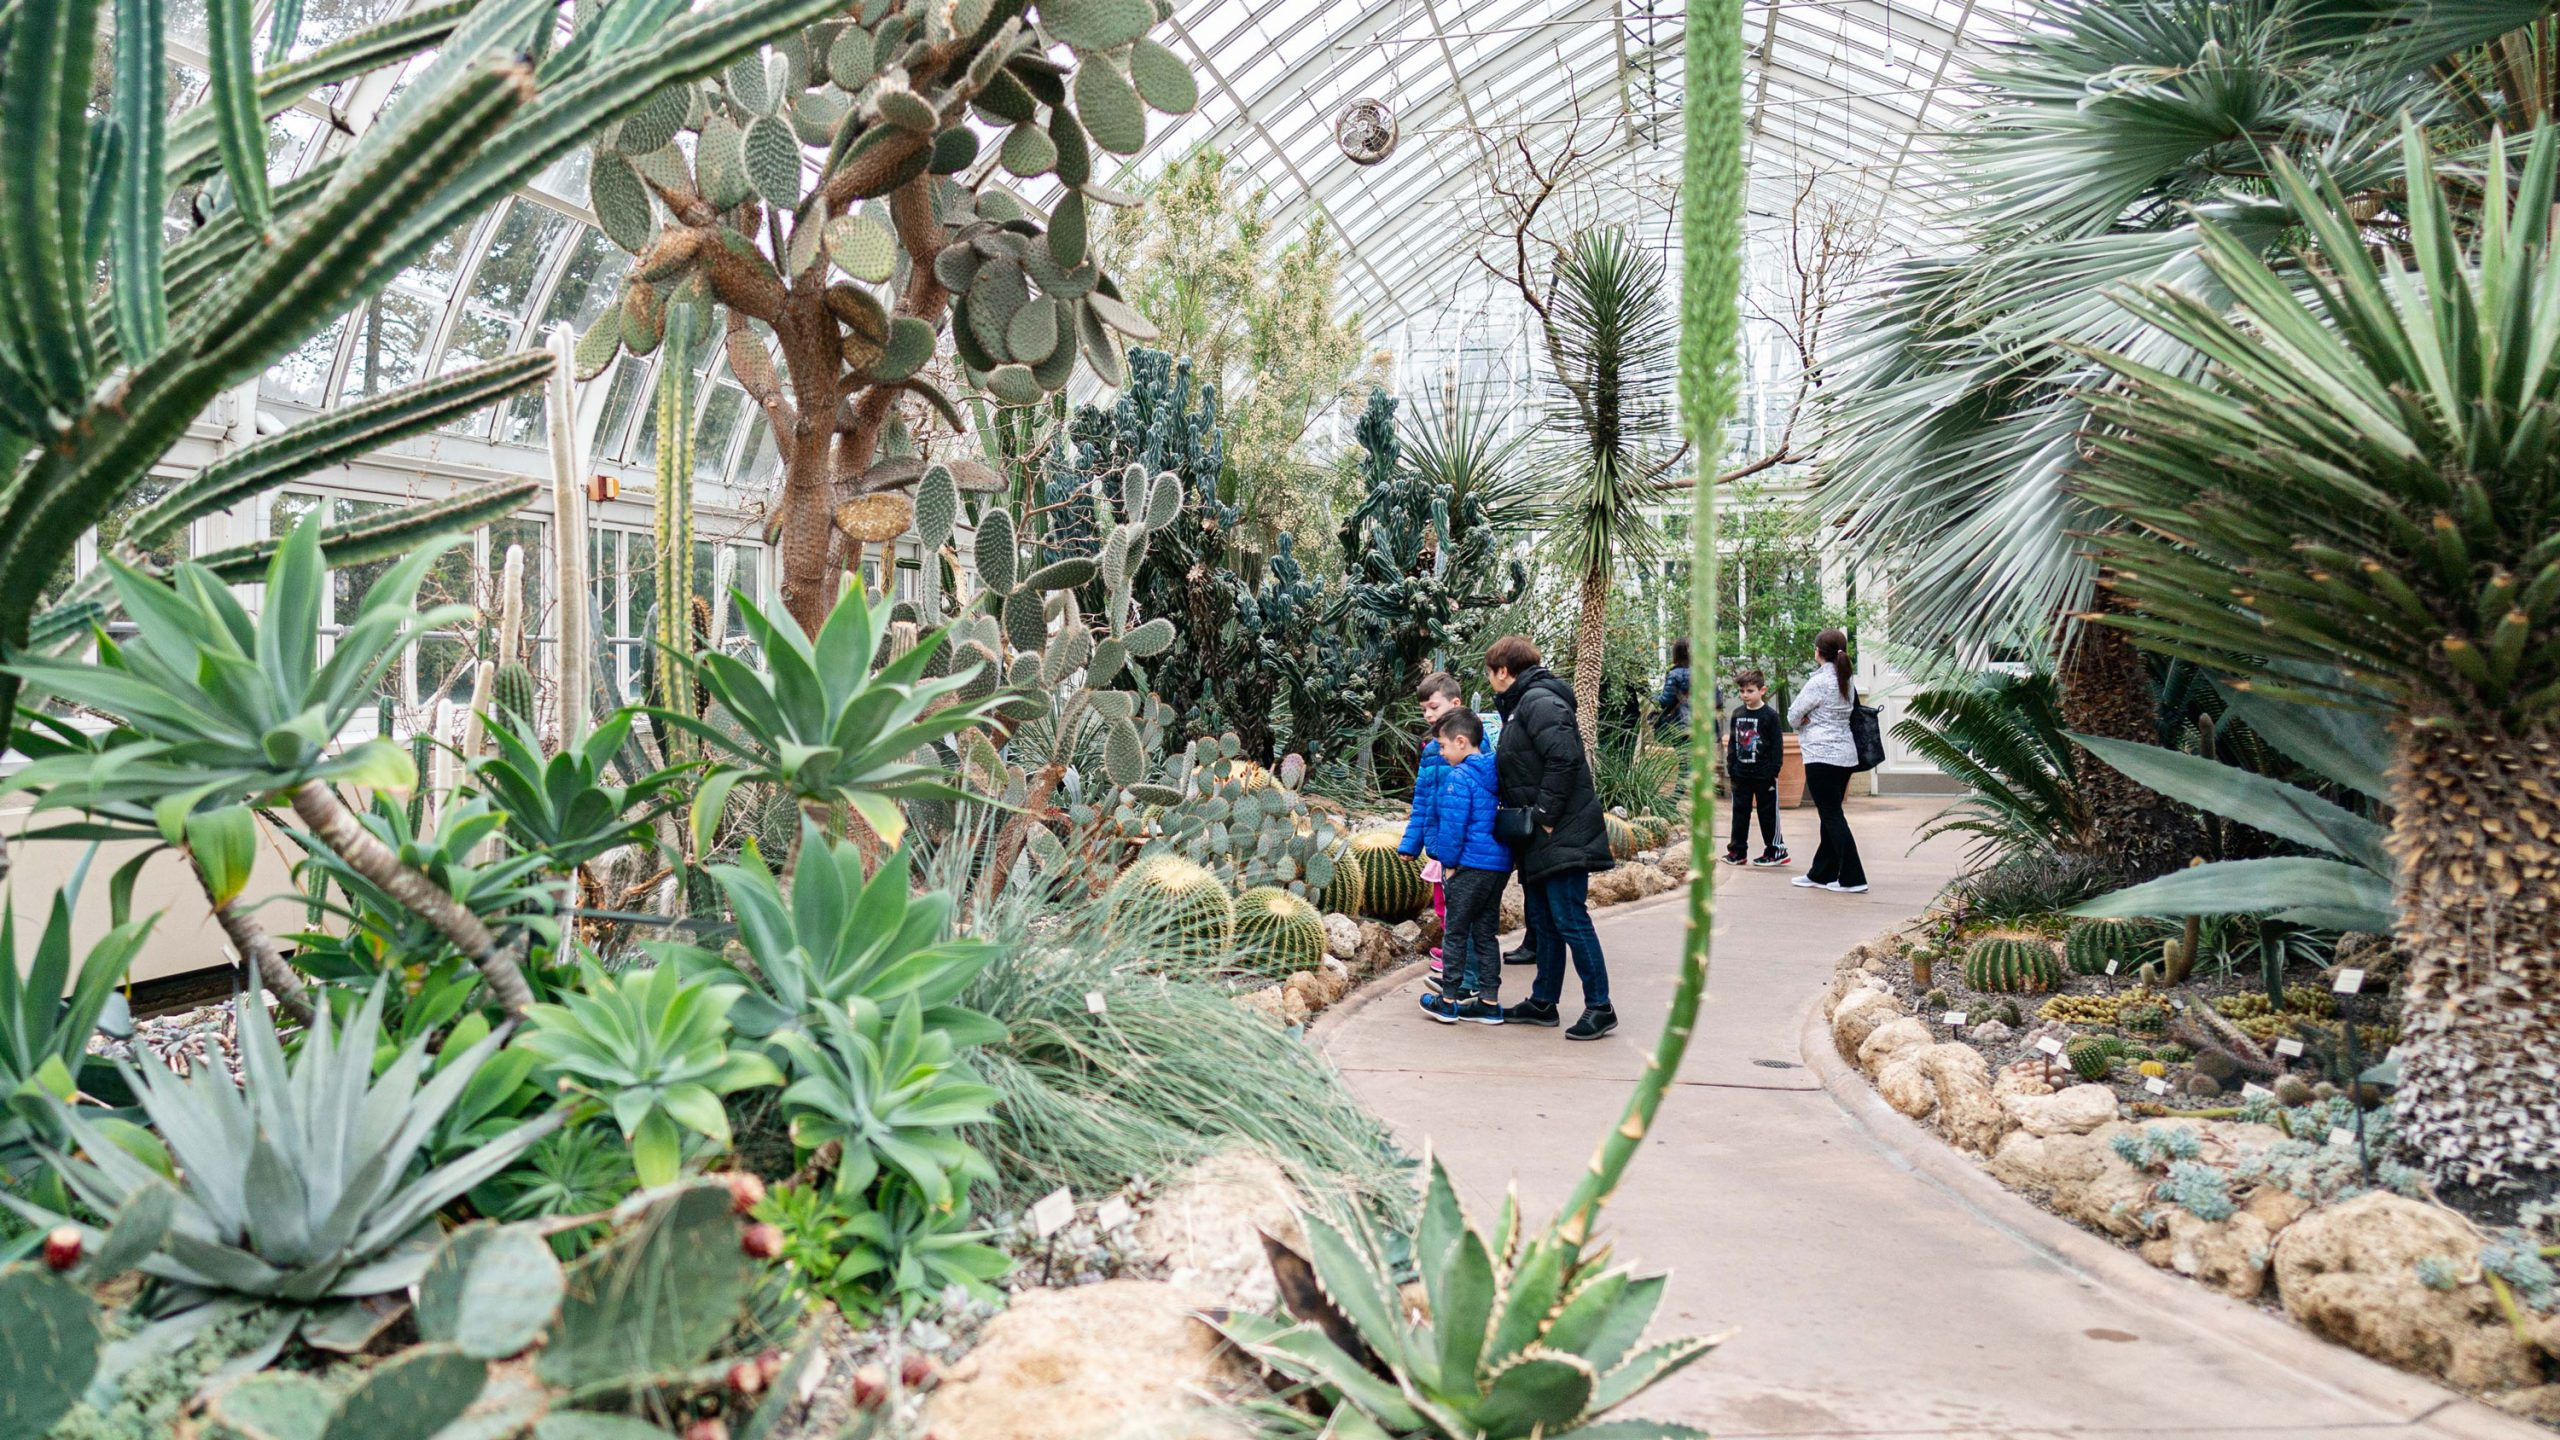 Children examining plants in the Desert House of the Conservatory.